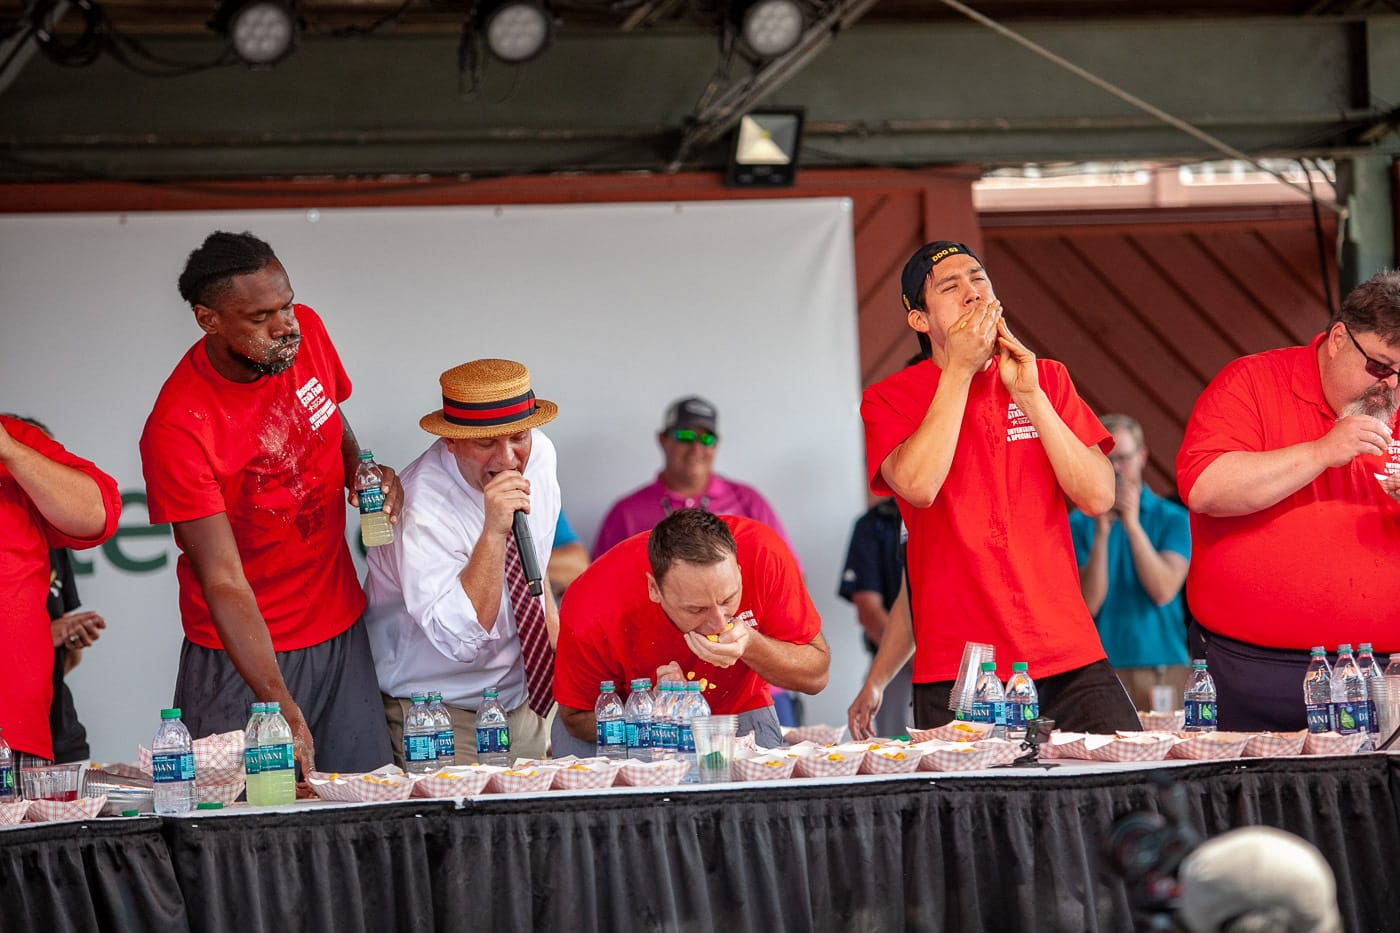 The Wisconsin State Fair World Cheese Curd Eating Championship